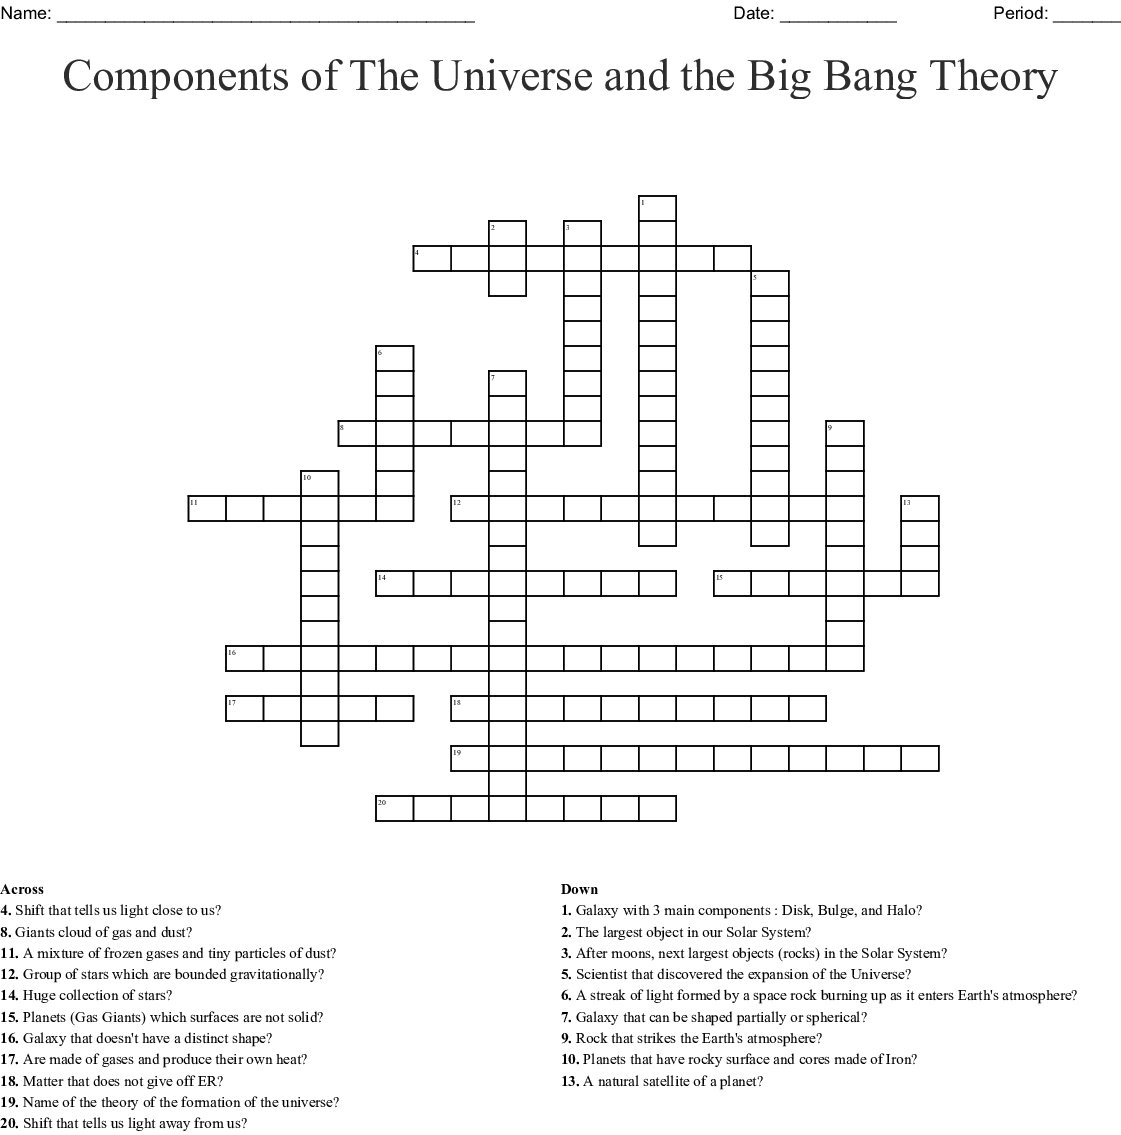 Components Of The Universe And The Big Bang Theory Crossword Wordmint